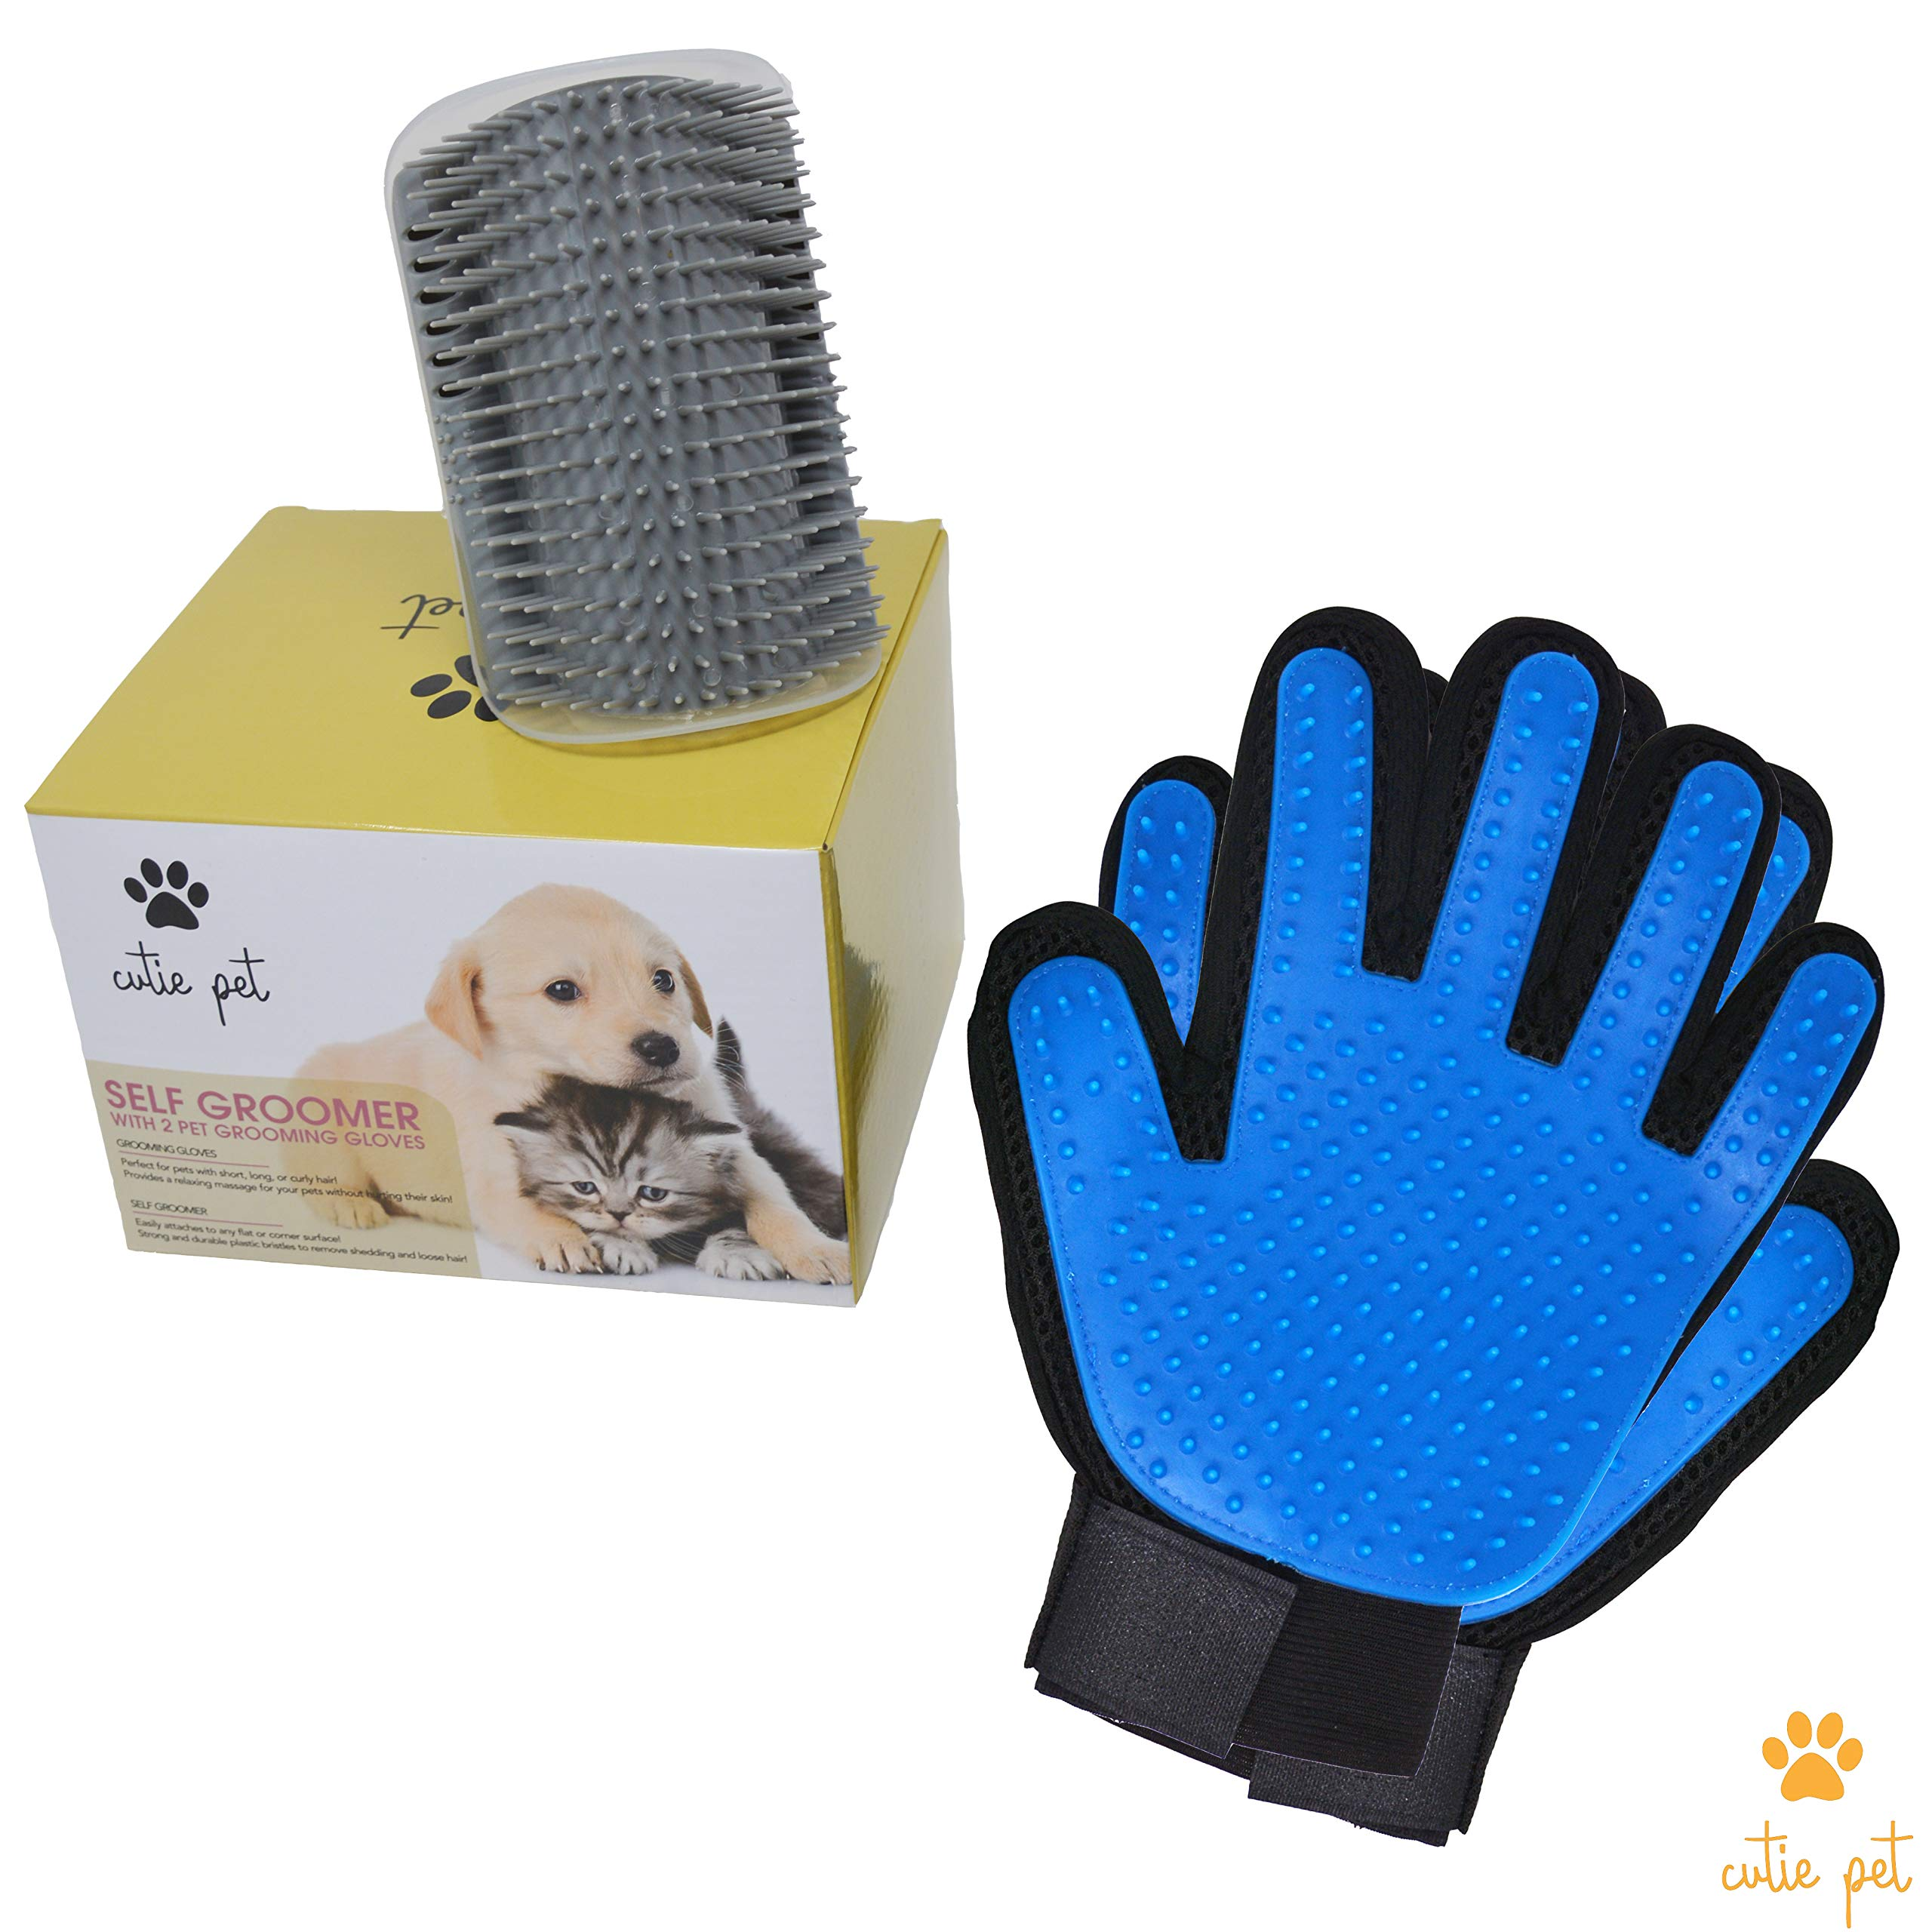 Cutie Pet Grooming Kit - Hair Remover Gloves with Wall Corner Massage Self Groomer - Deshedding Bundle for Dog & Cat with Long & Short Fur